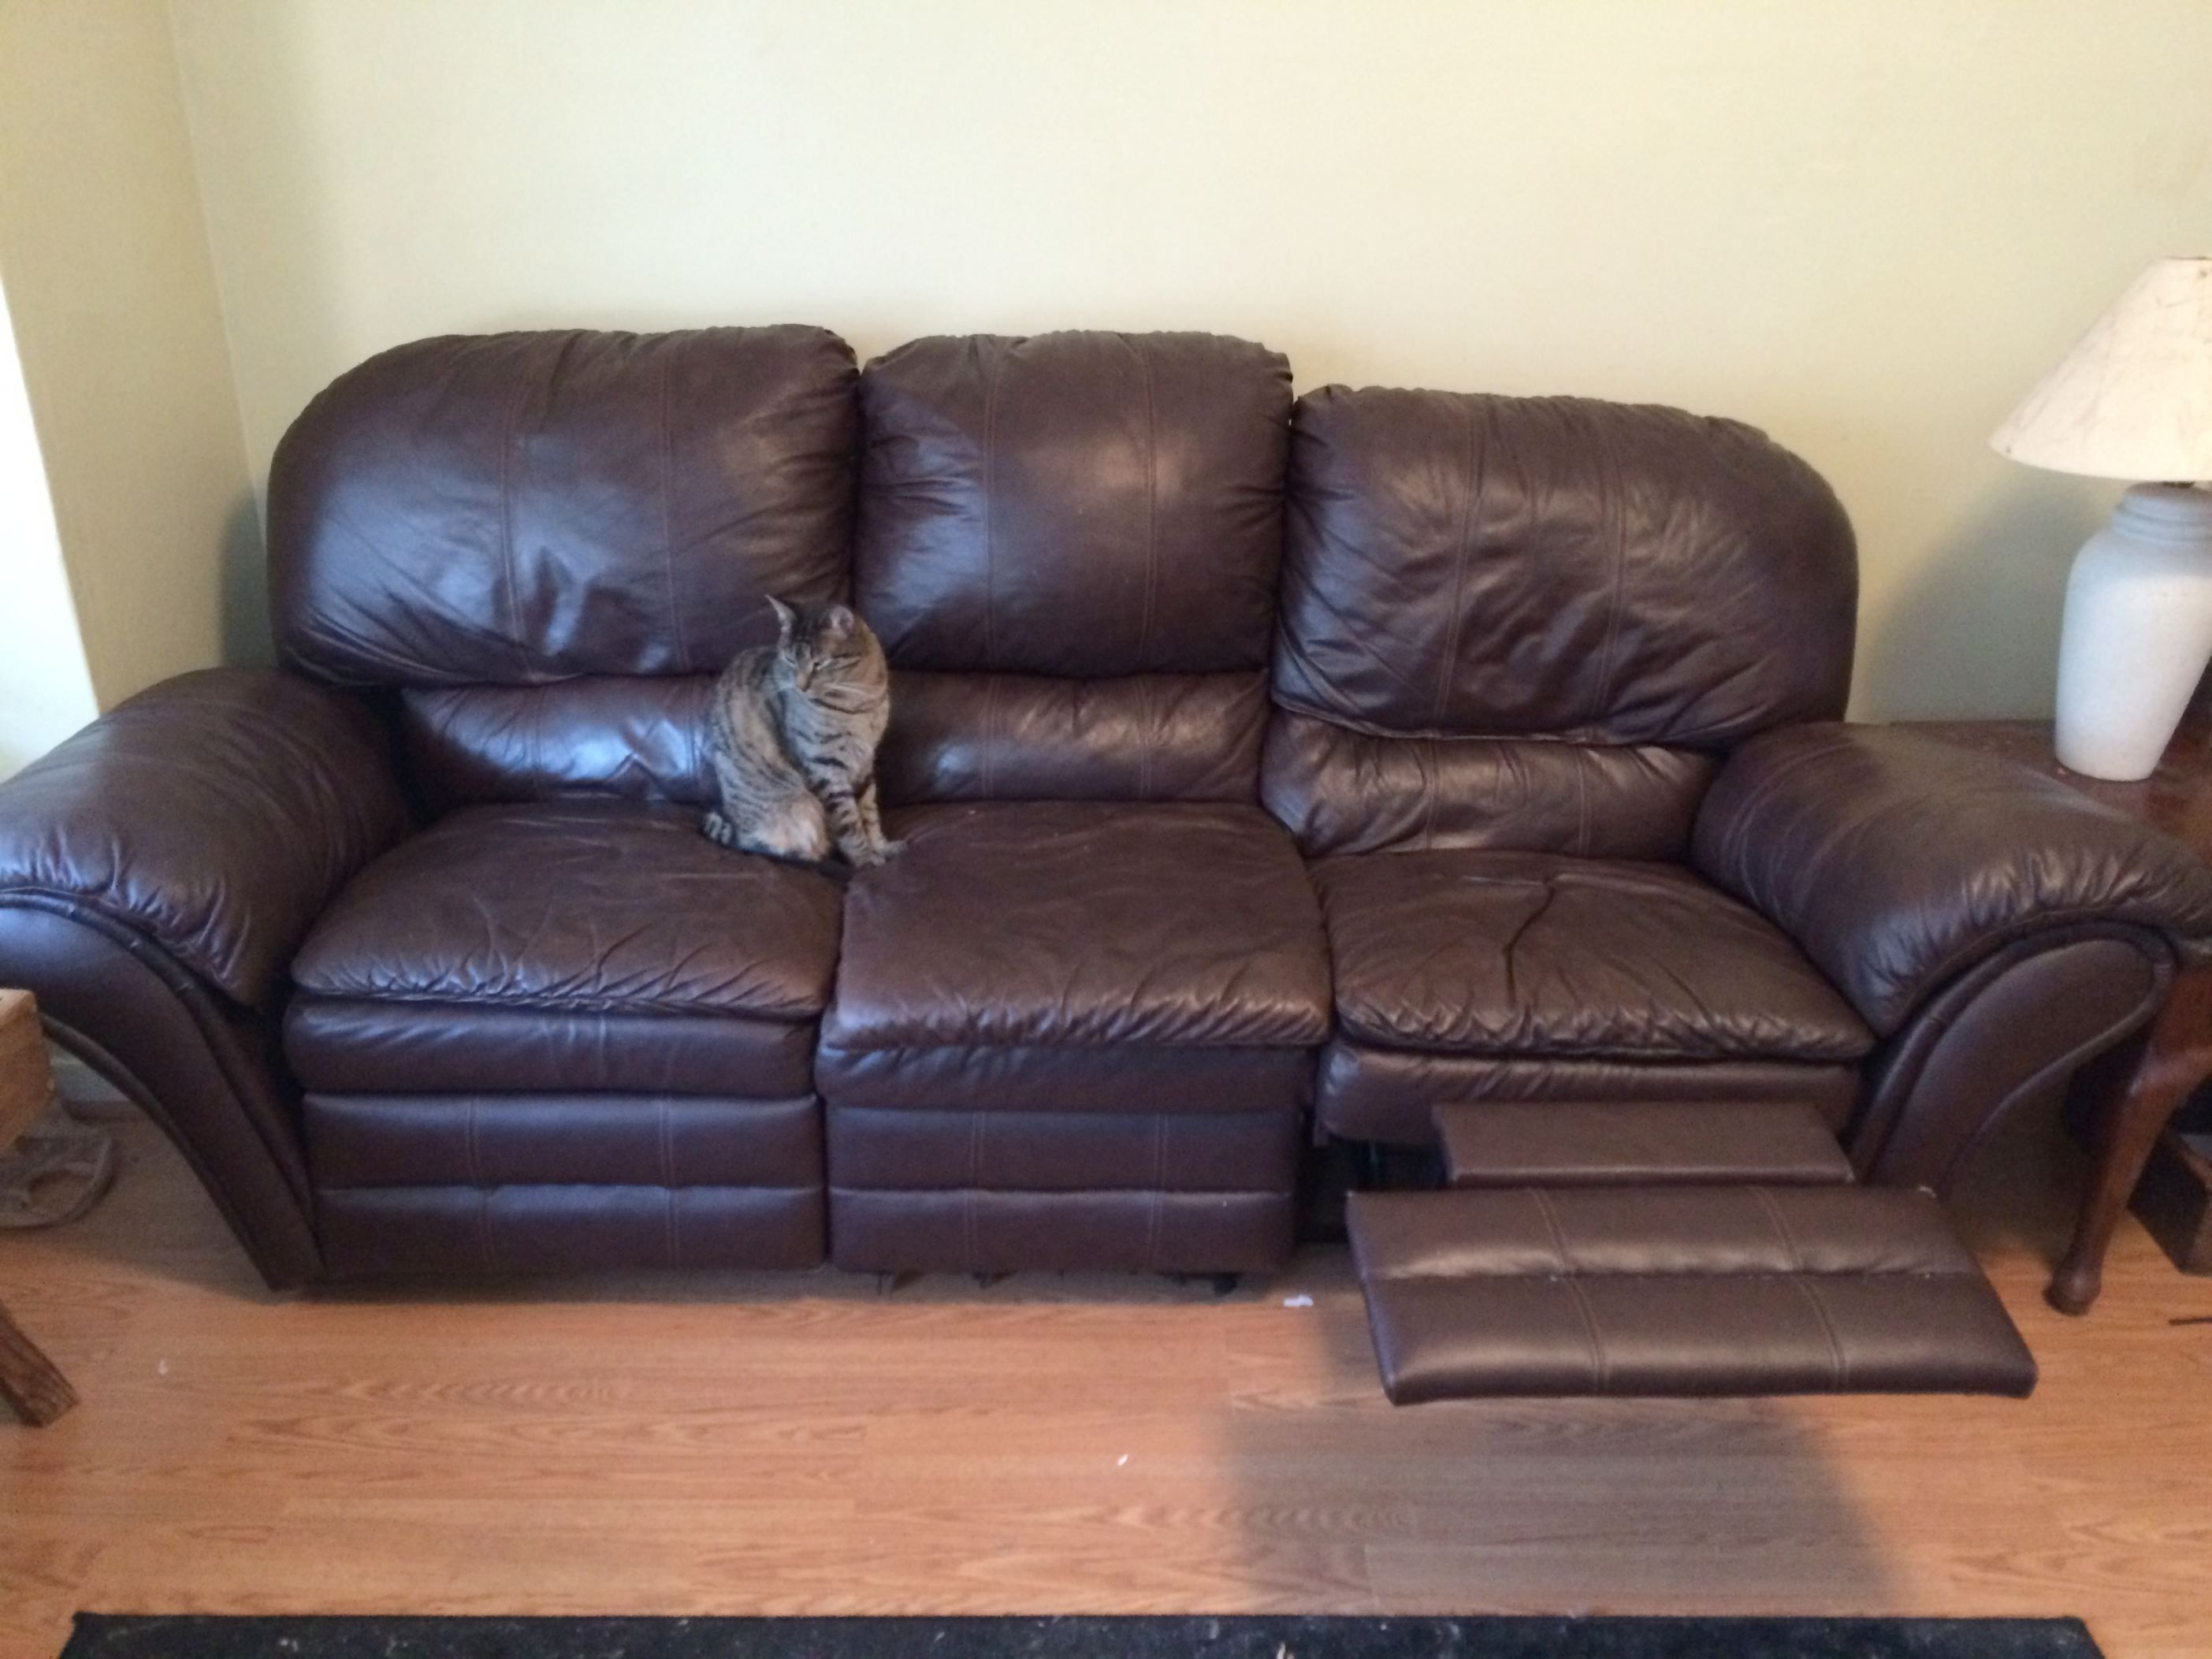 Craigslist Leather Sofas Couches For Sale Cheap Couch Leather